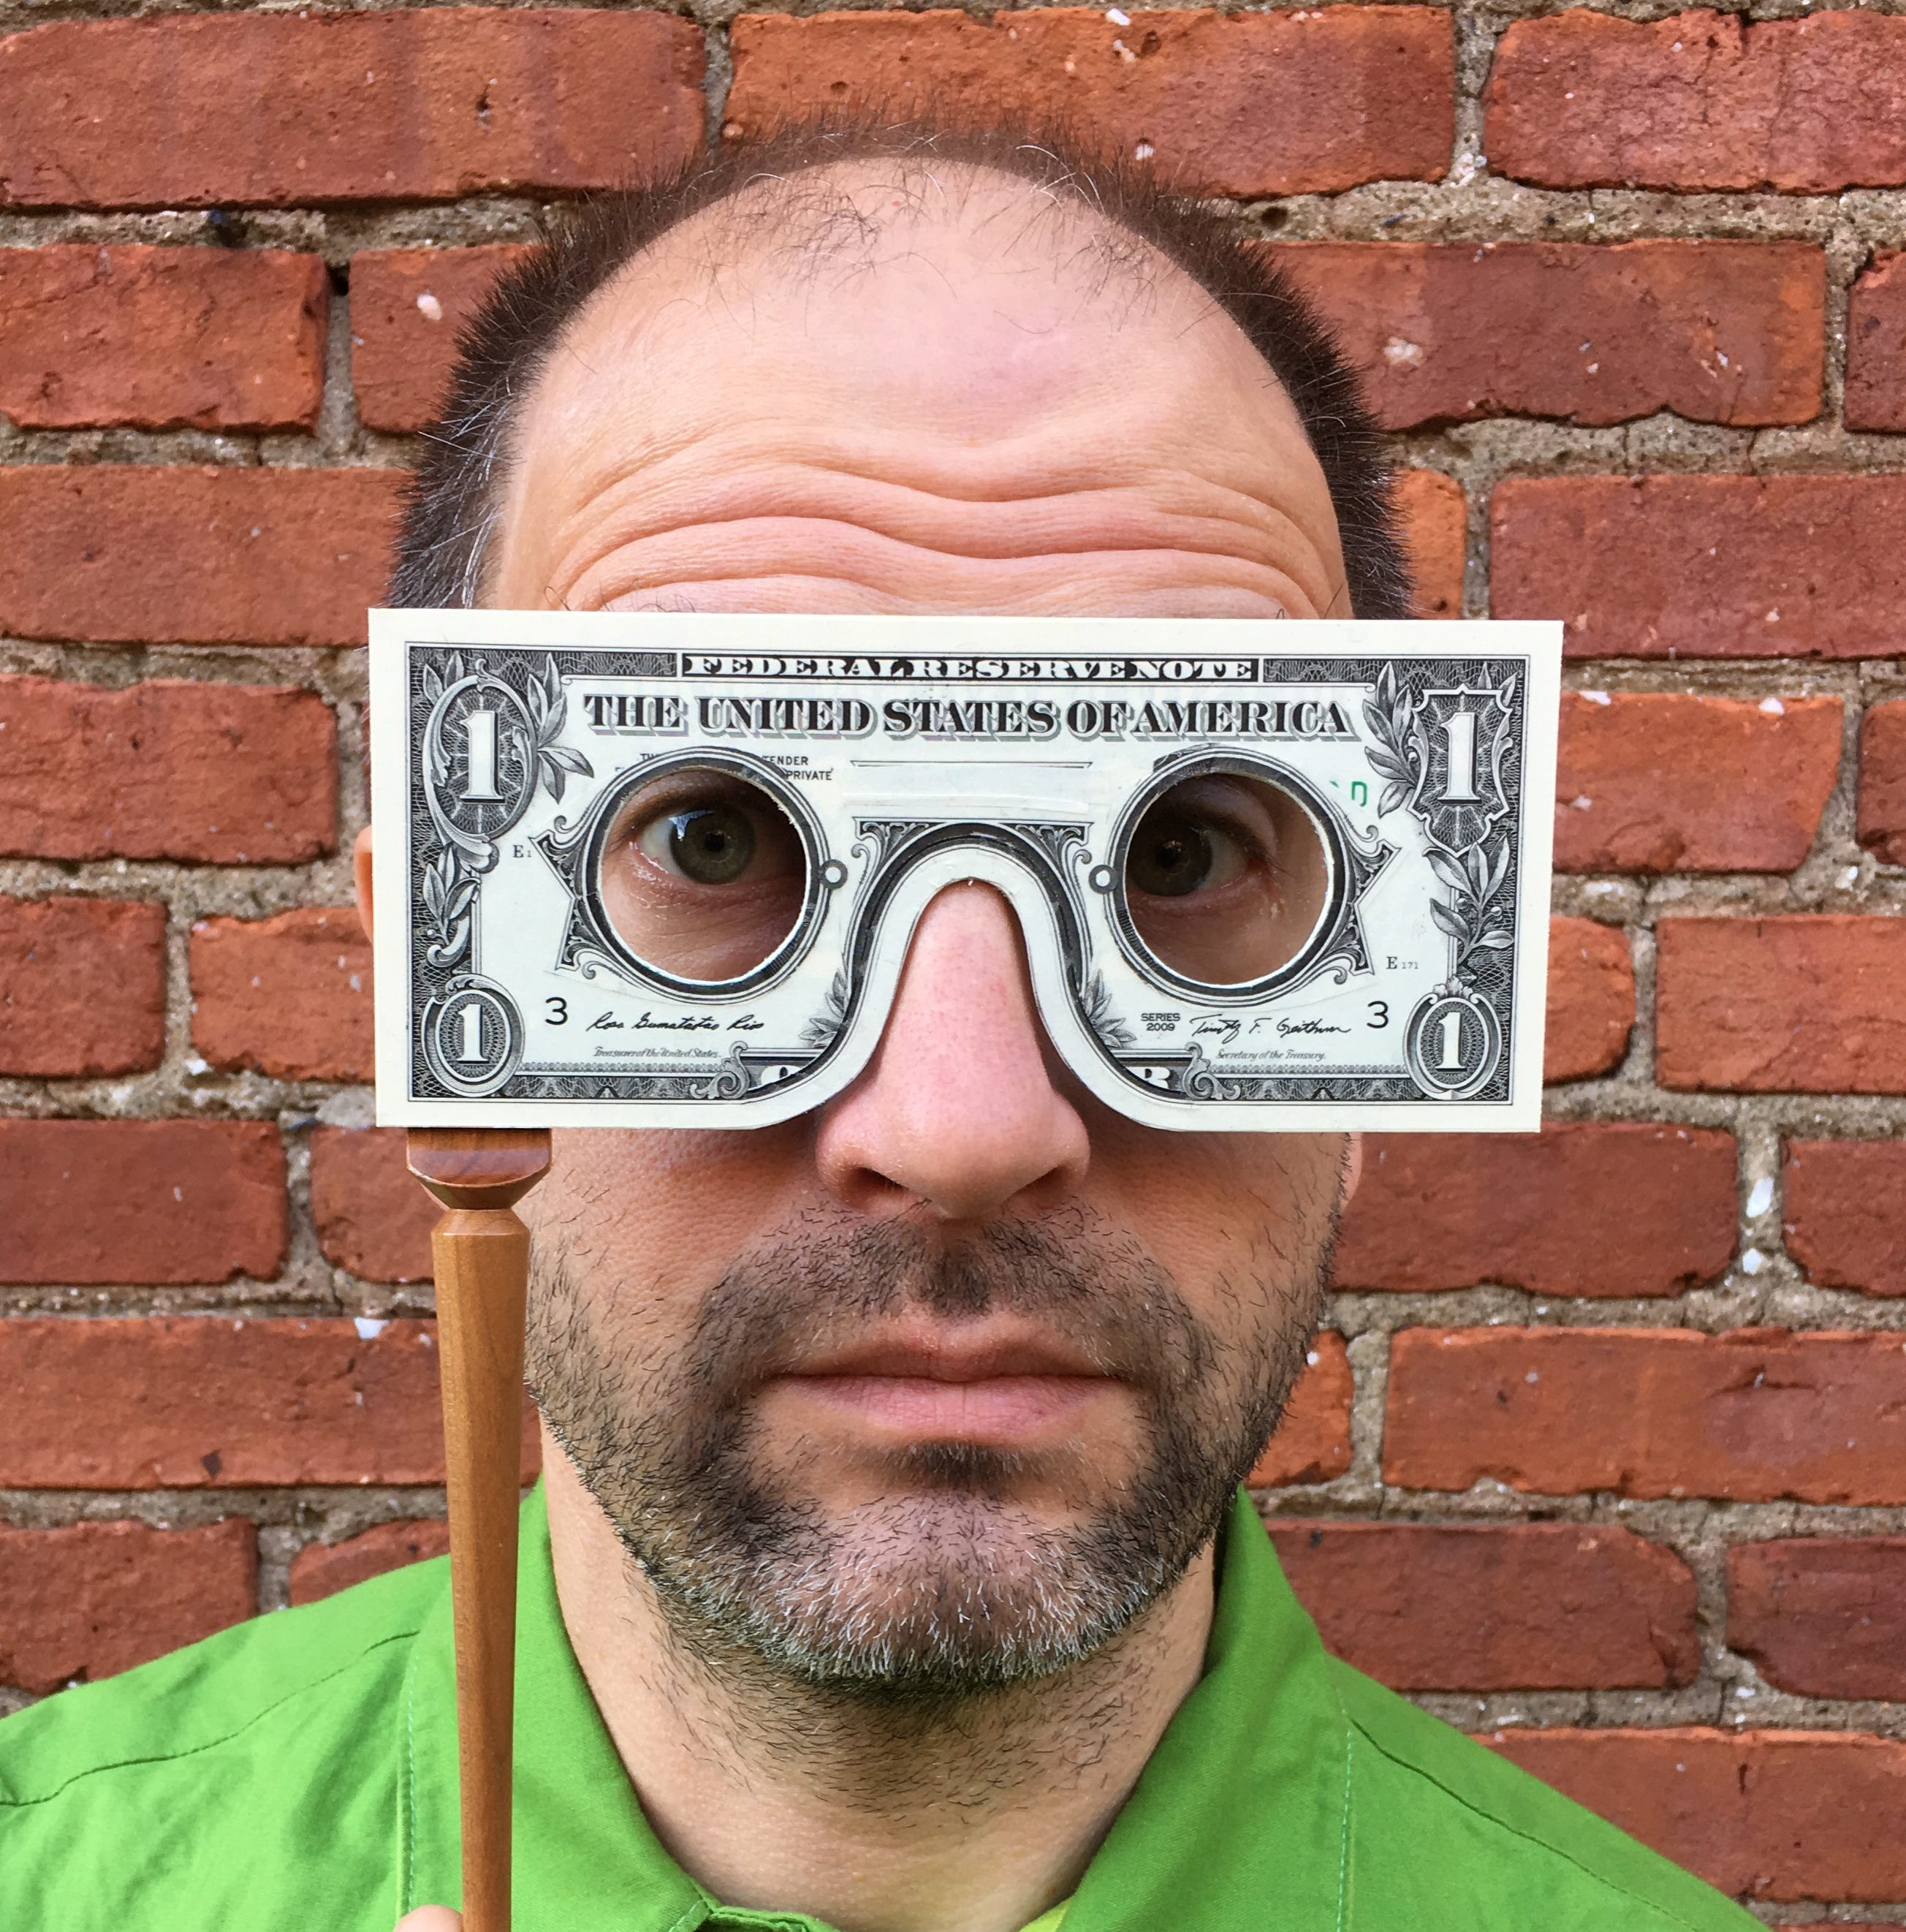 Edgar native Mark Wagner turns money into art. He'll share his story this weekend in Wausau.